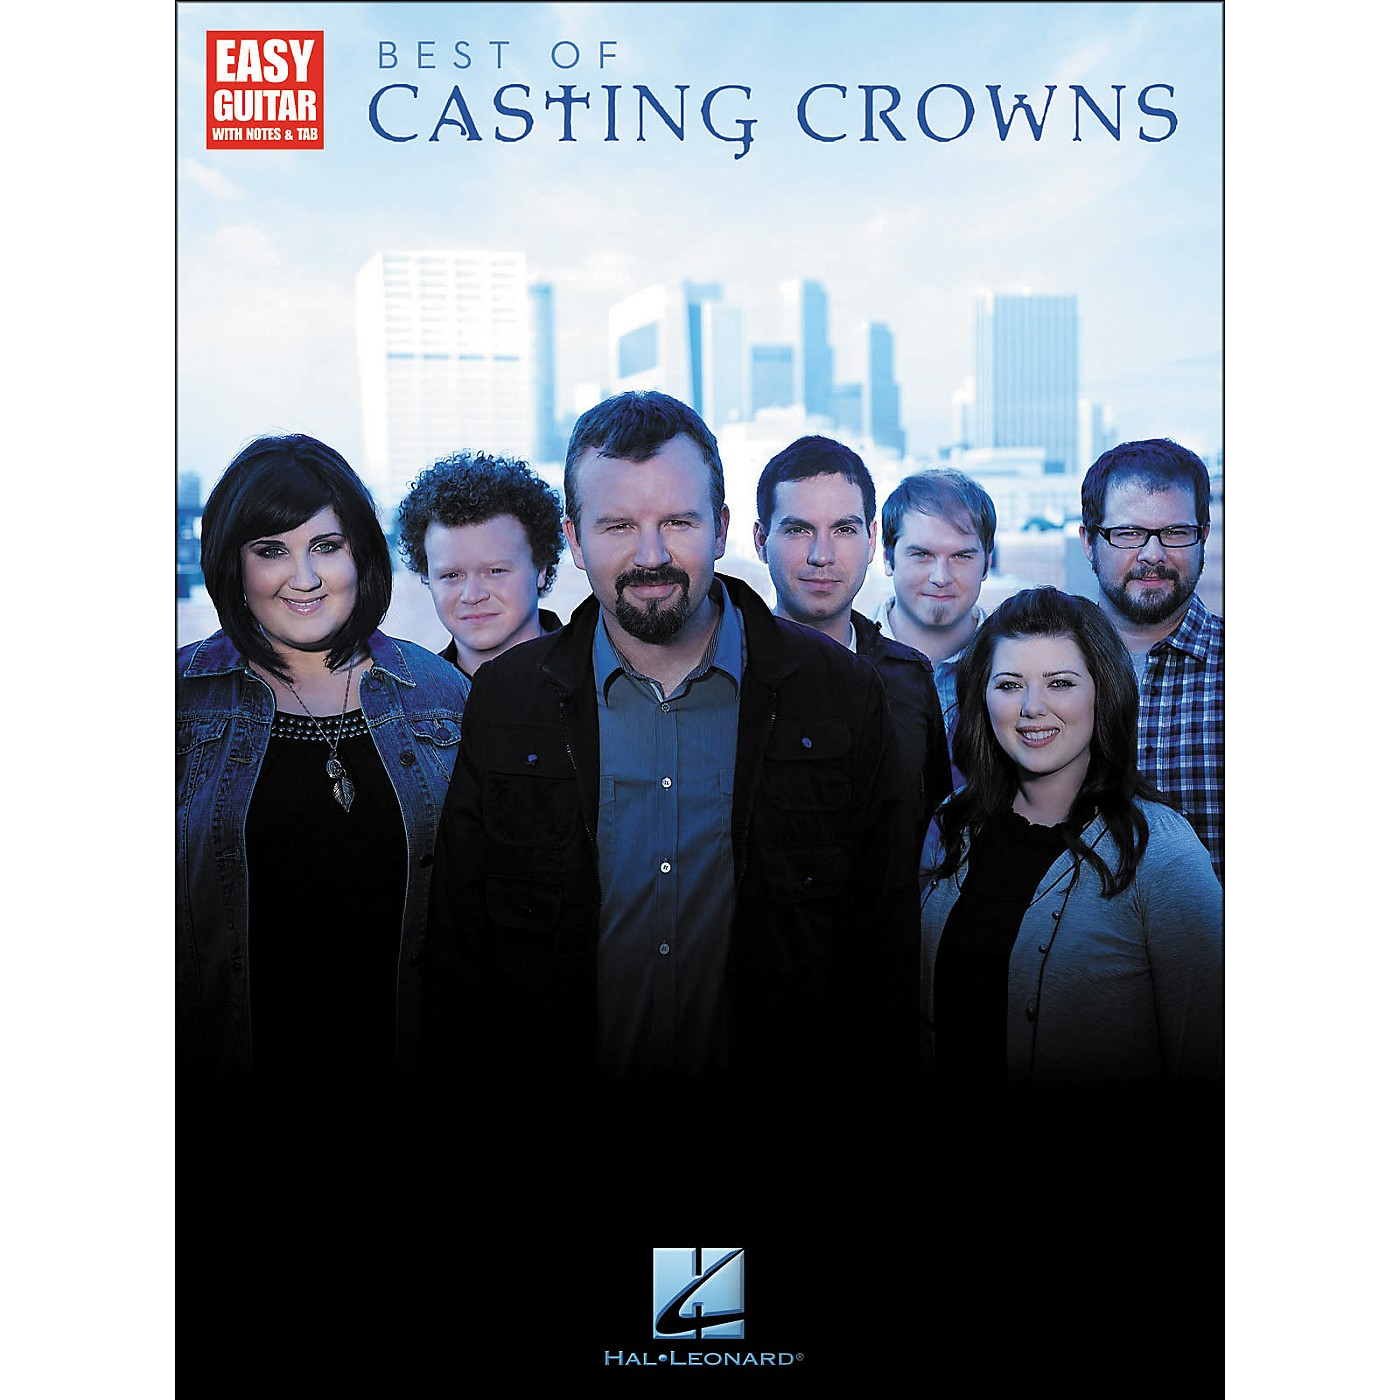 Hal Leonard Best Of Casting Crowns - Easy Guitar with Notes & Tab thumbnail